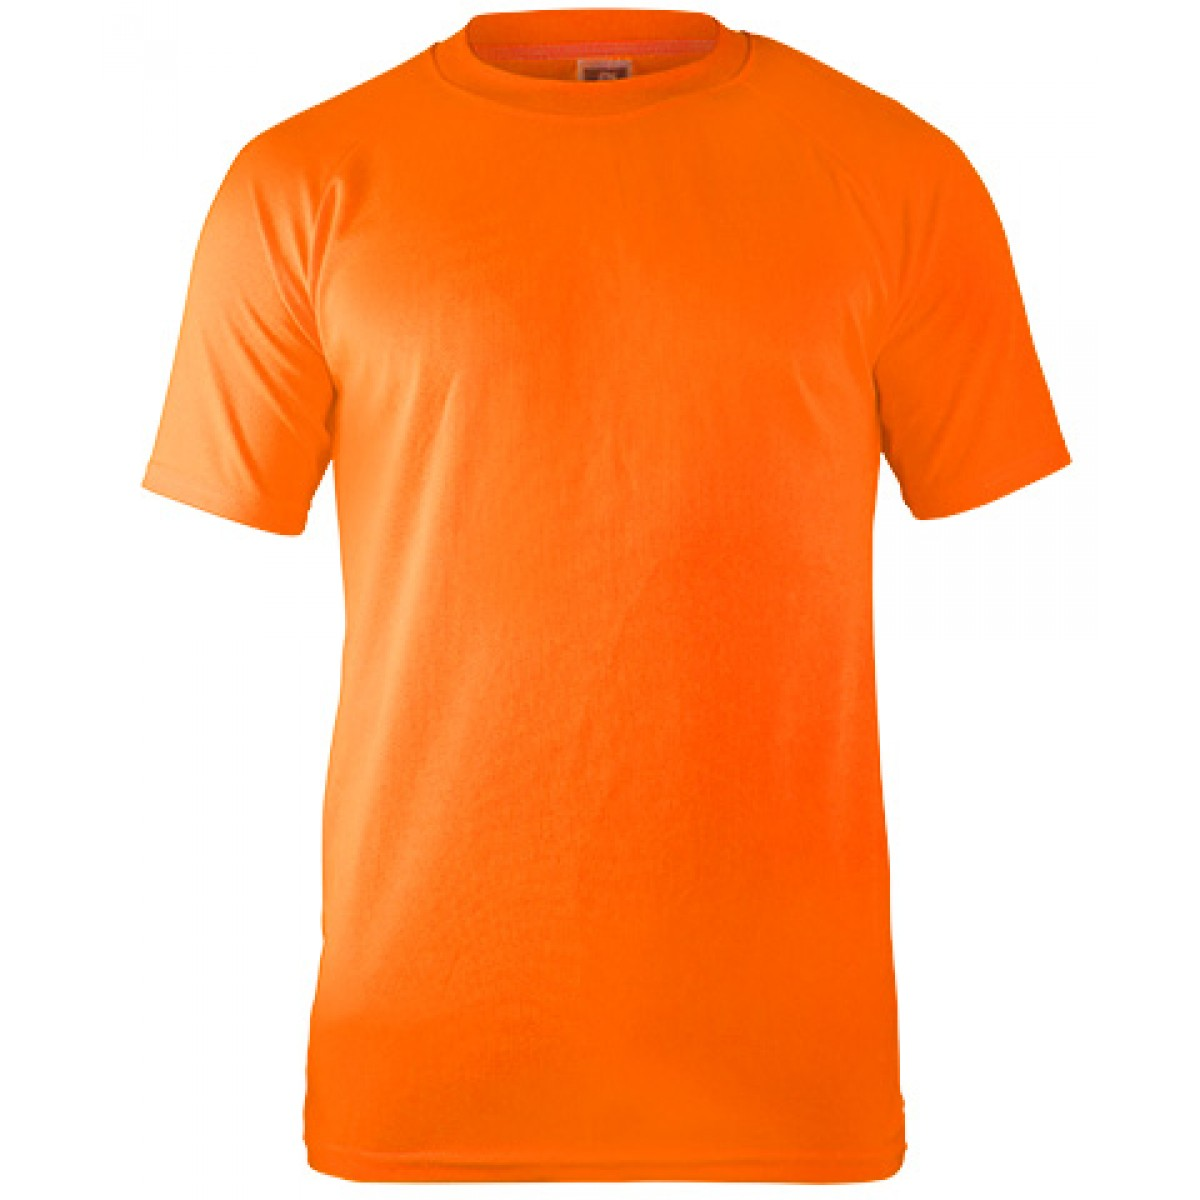 Performance T-shirt-Safety Orange-XL